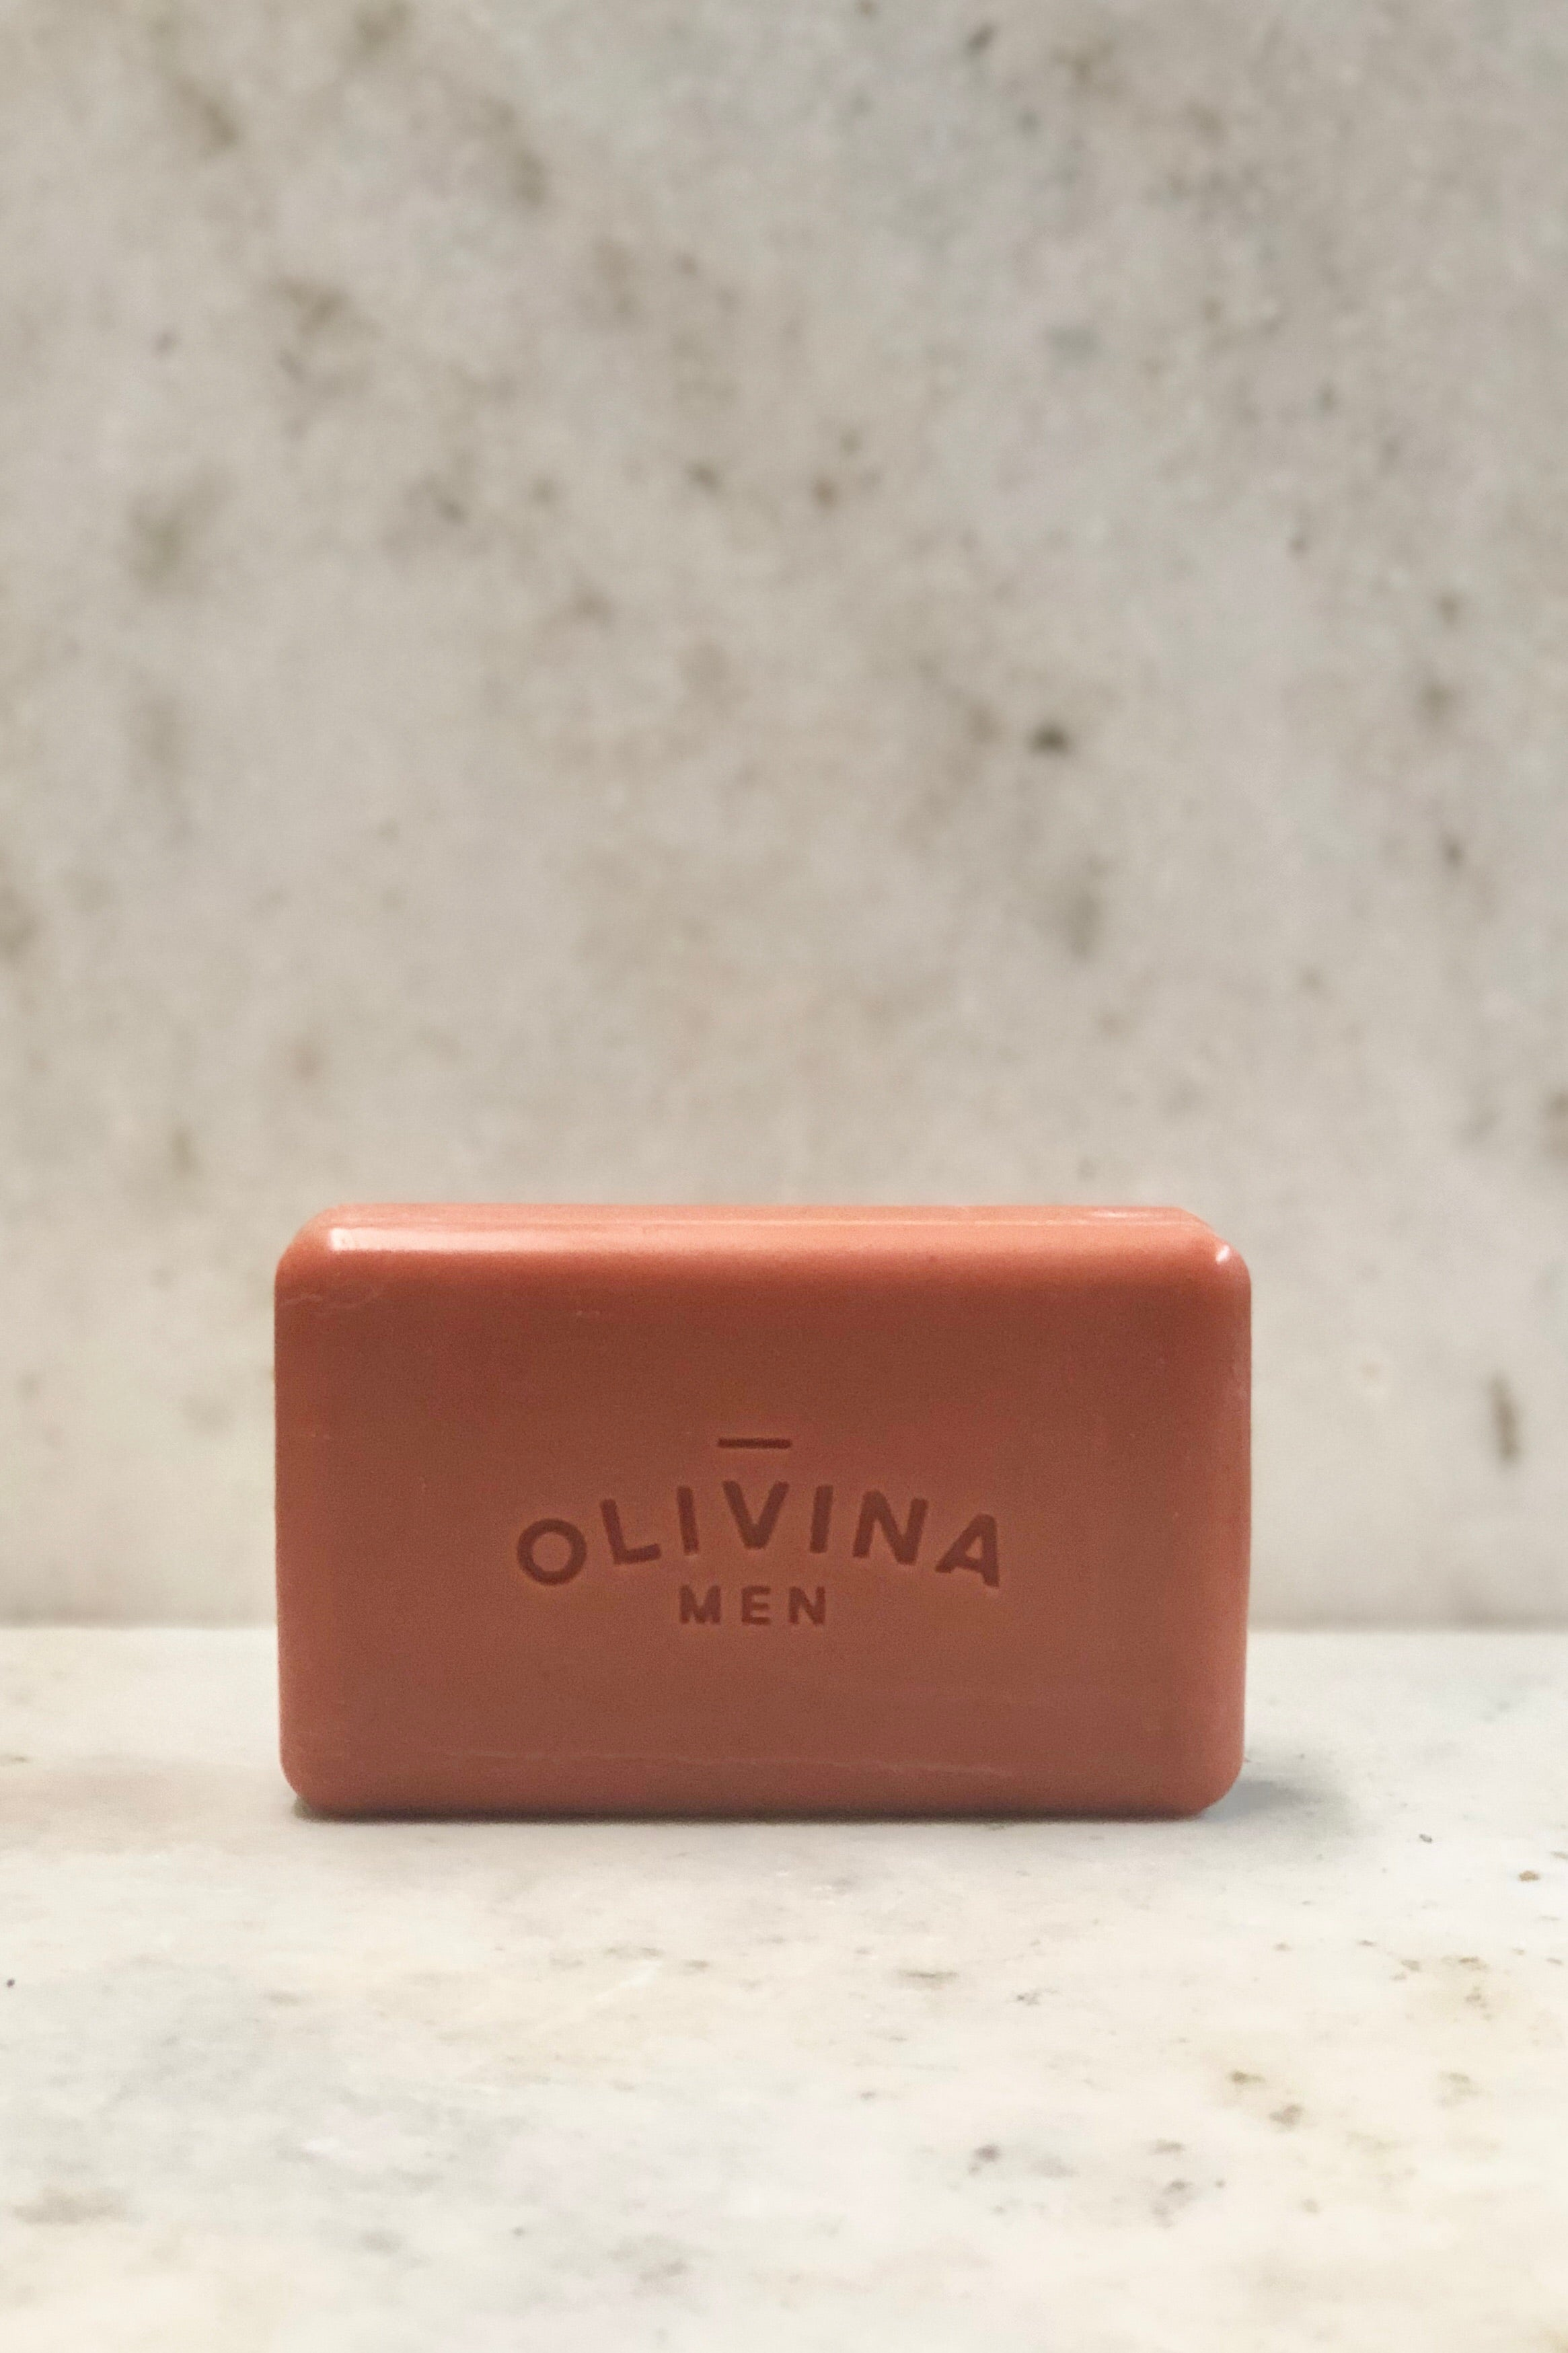 Olivina Men Exfoliating Bar Soap